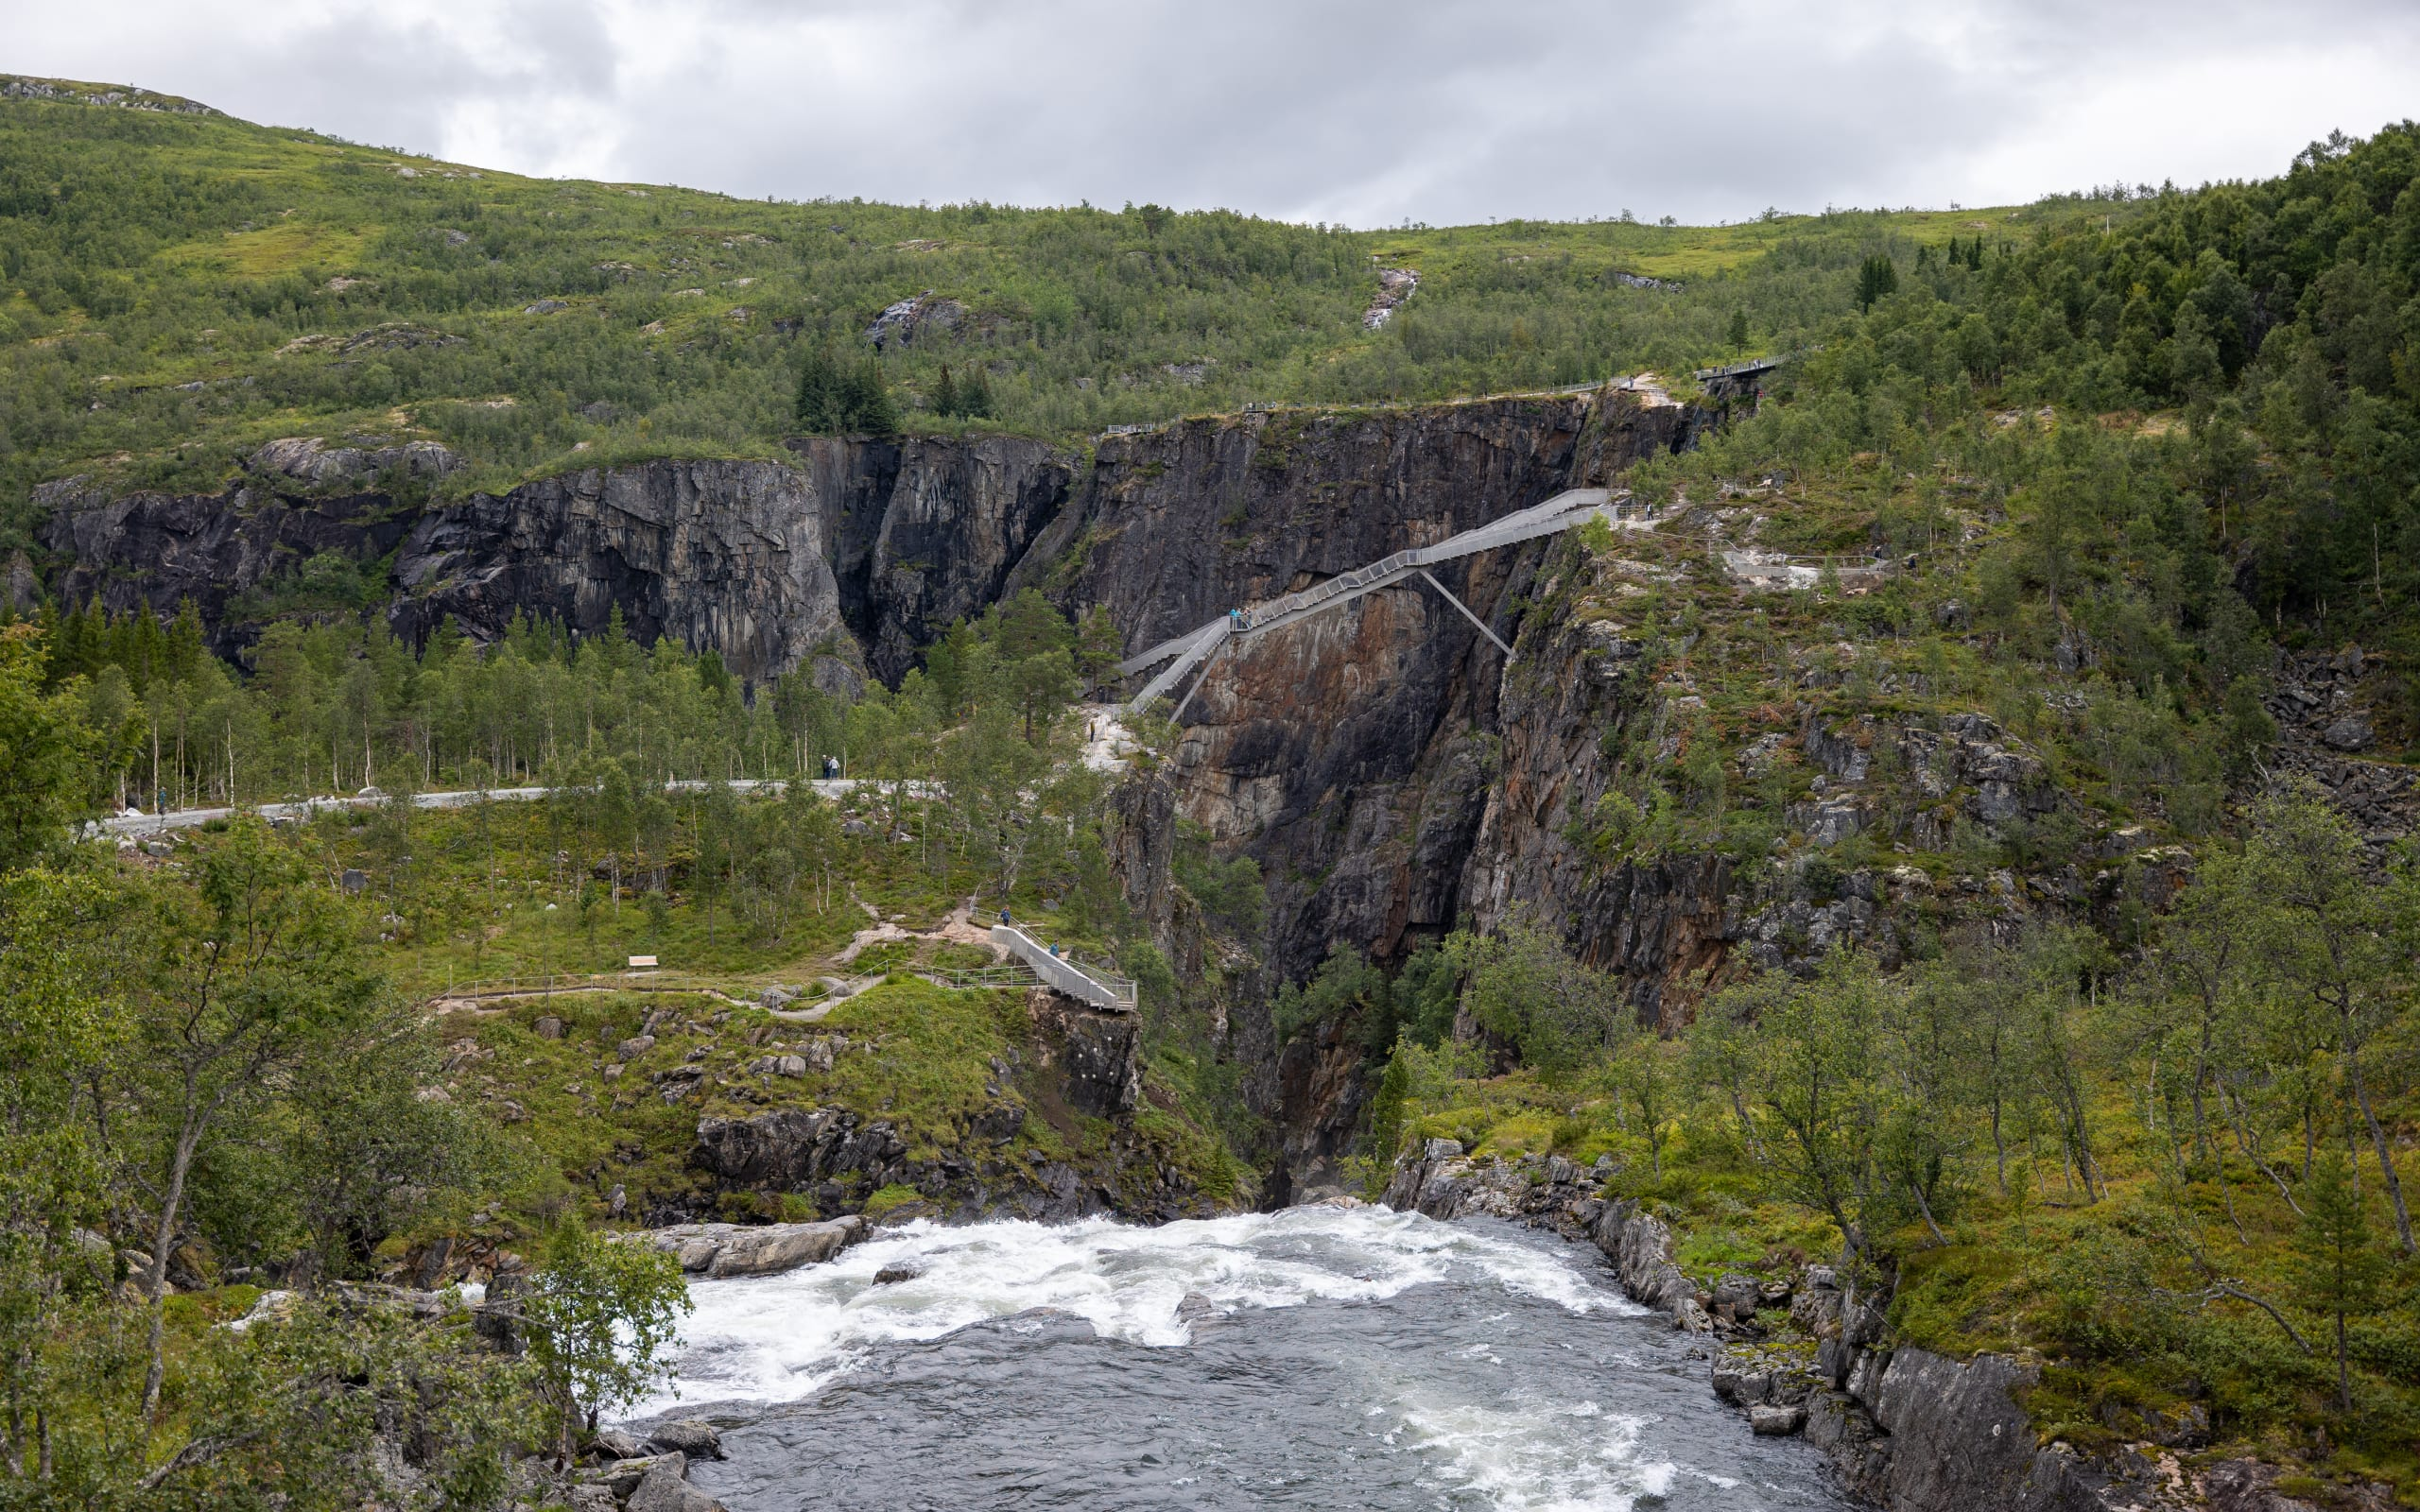 Walking Bridge at Vøringsfossen waterfall